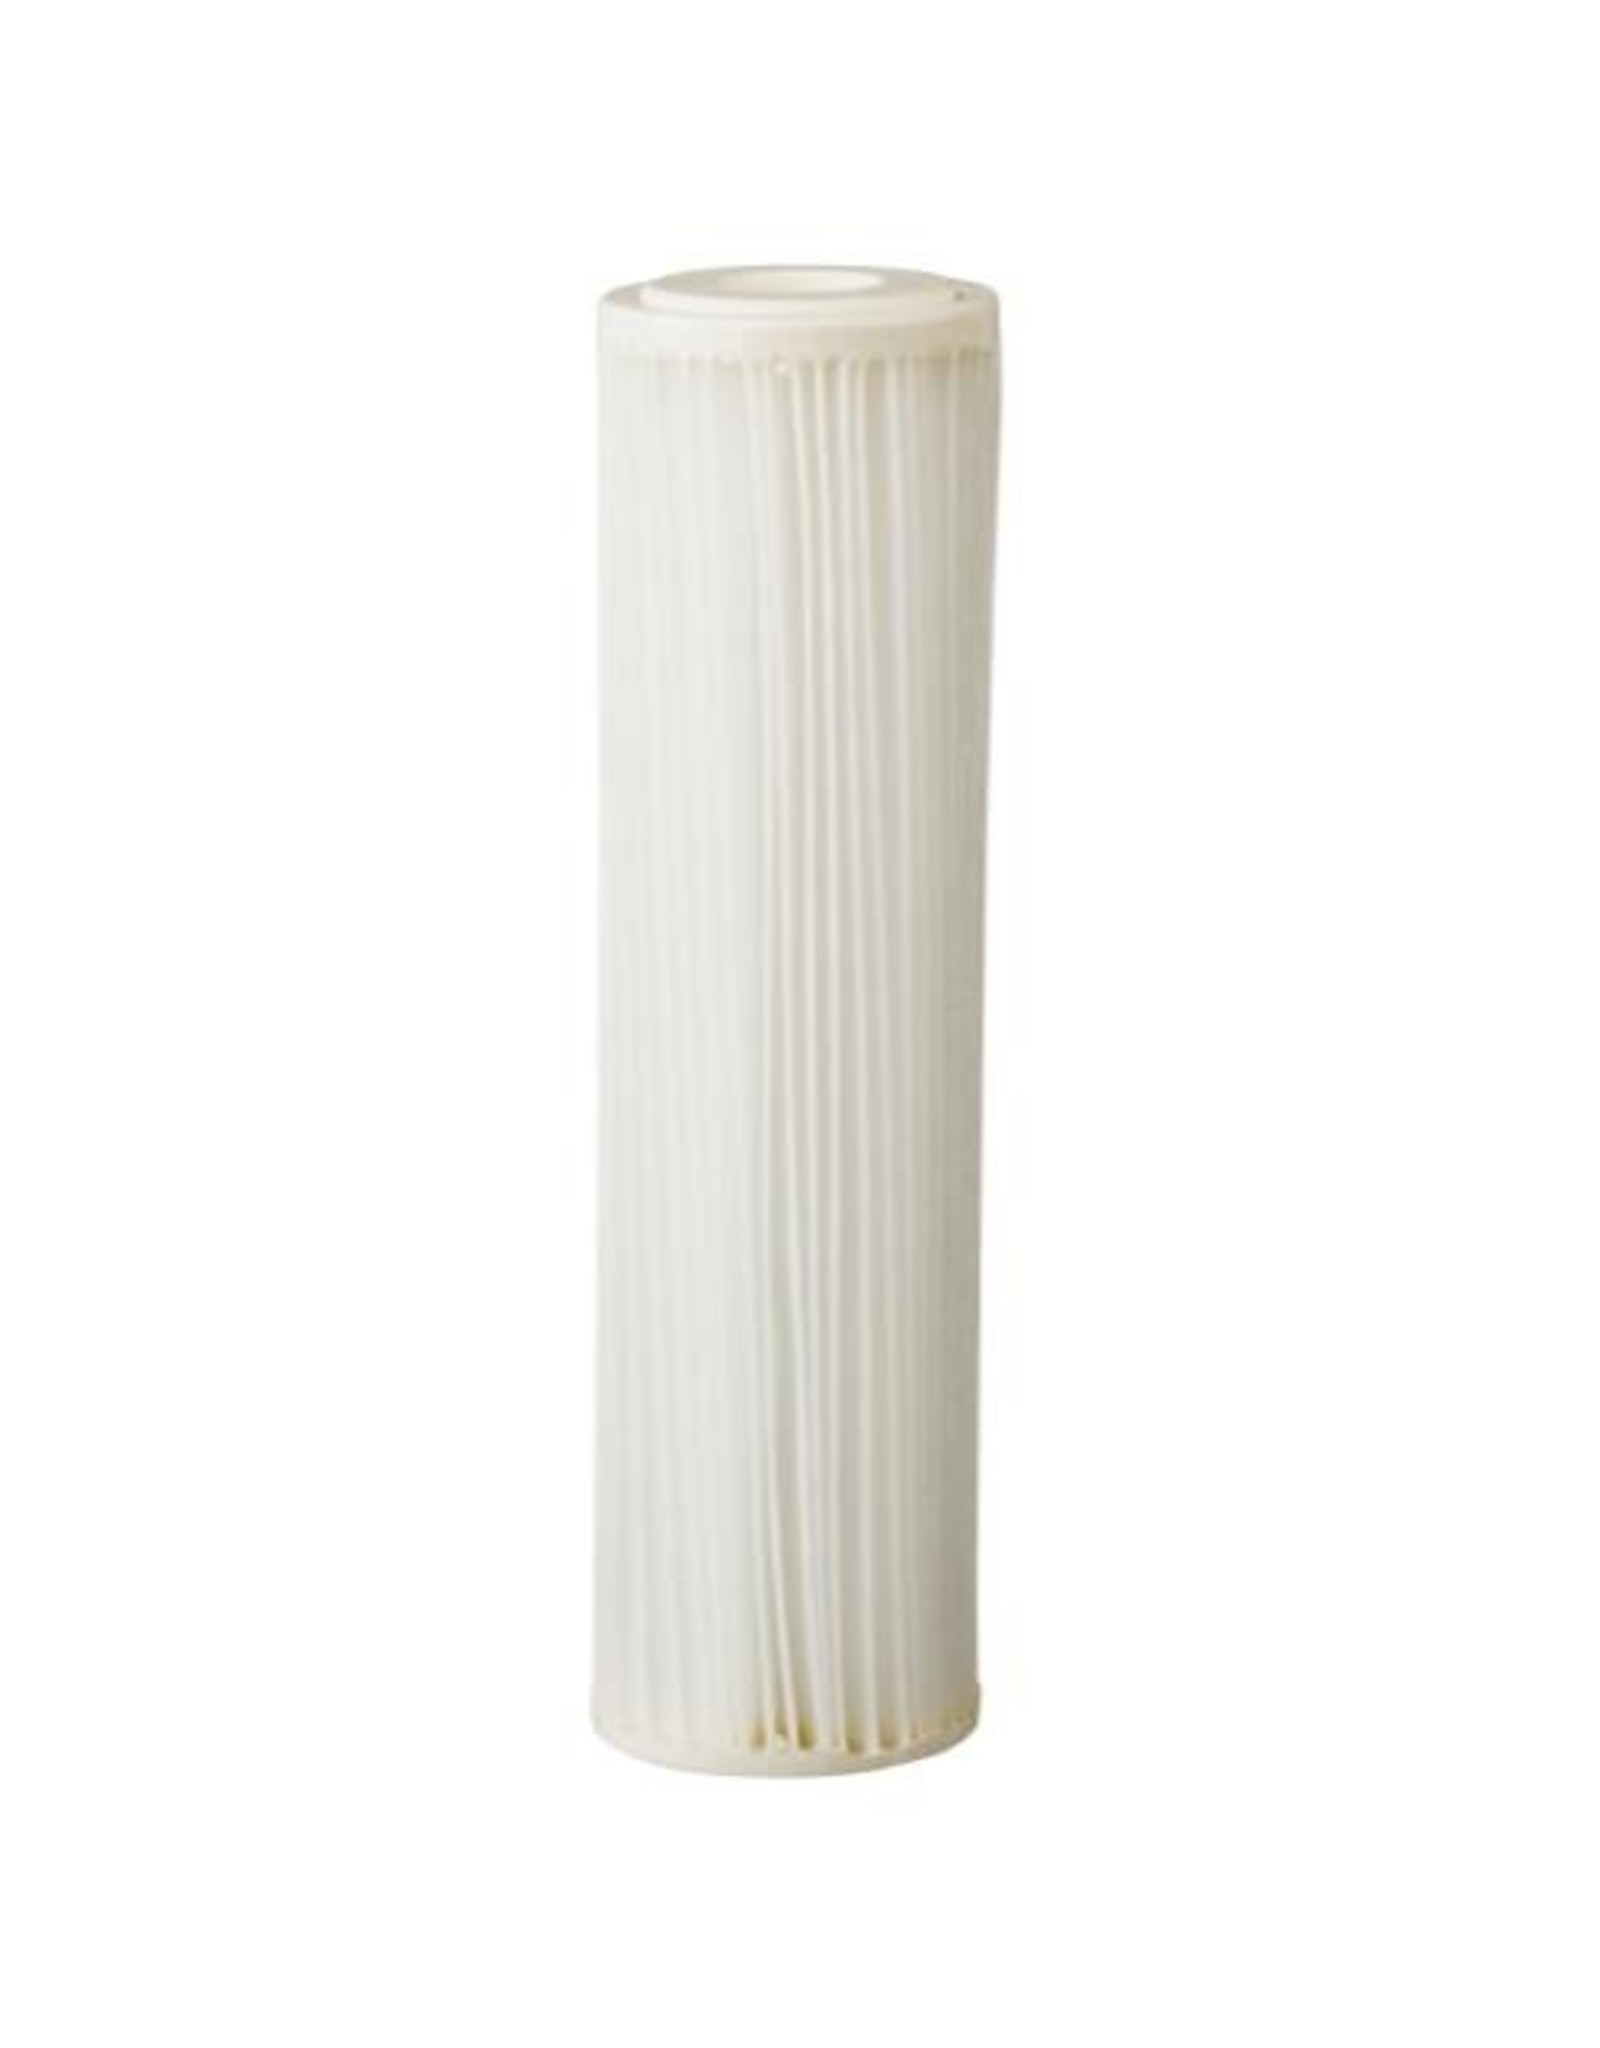 Premium Pleated/Cleanable Sediment Filter 2 In X 10 In